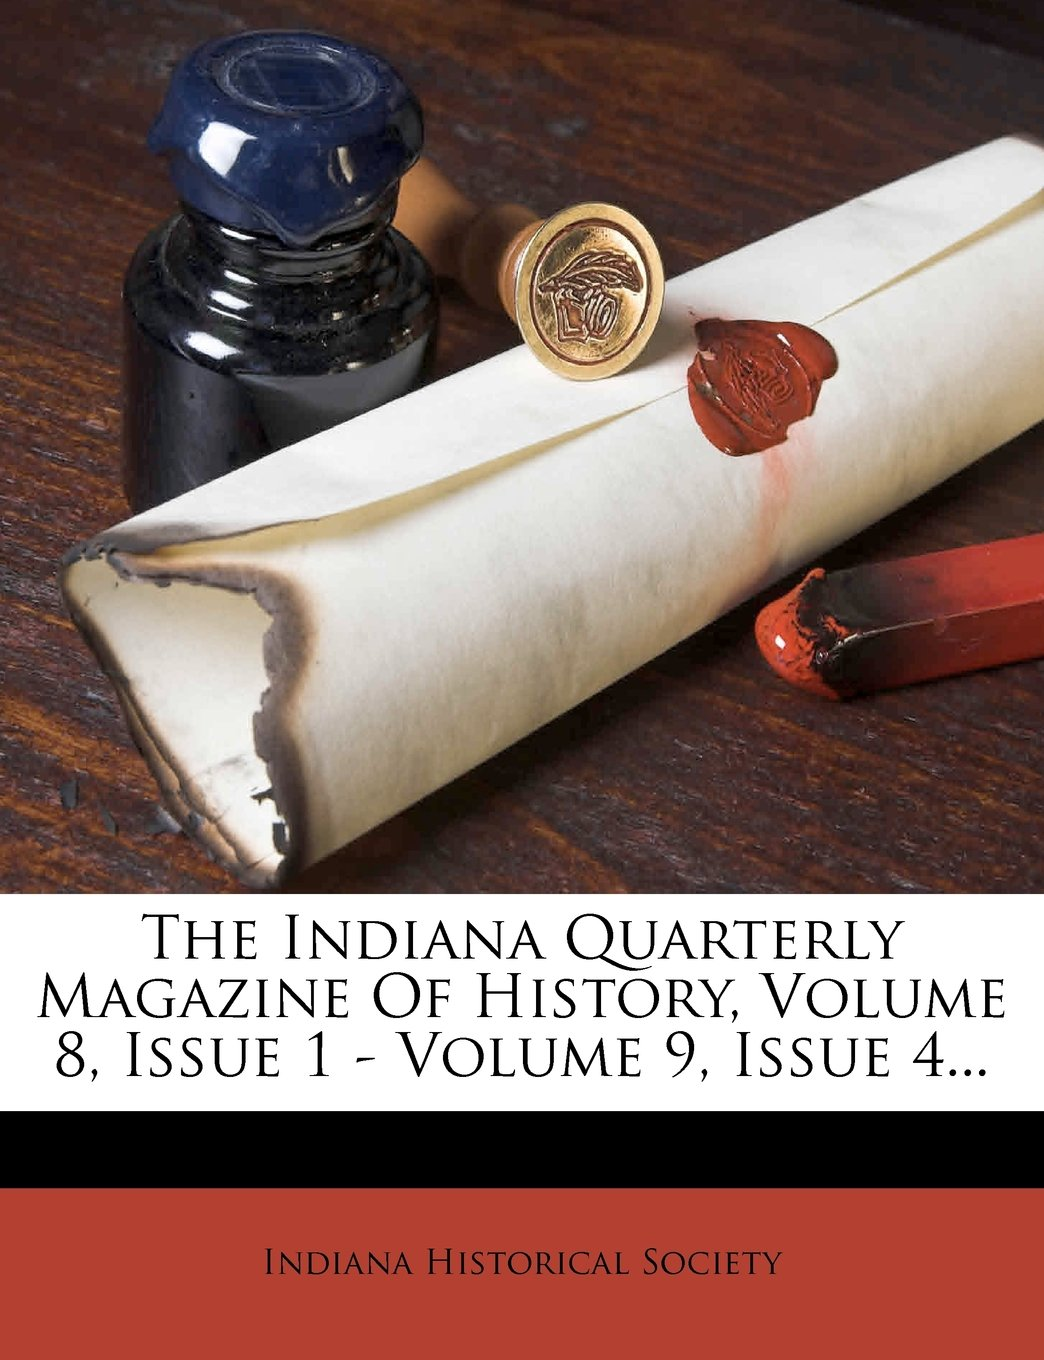 The Indiana Quarterly Magazine Of History, Volume 8, Issue 1 - Volume 9, Issue 4... pdf epub